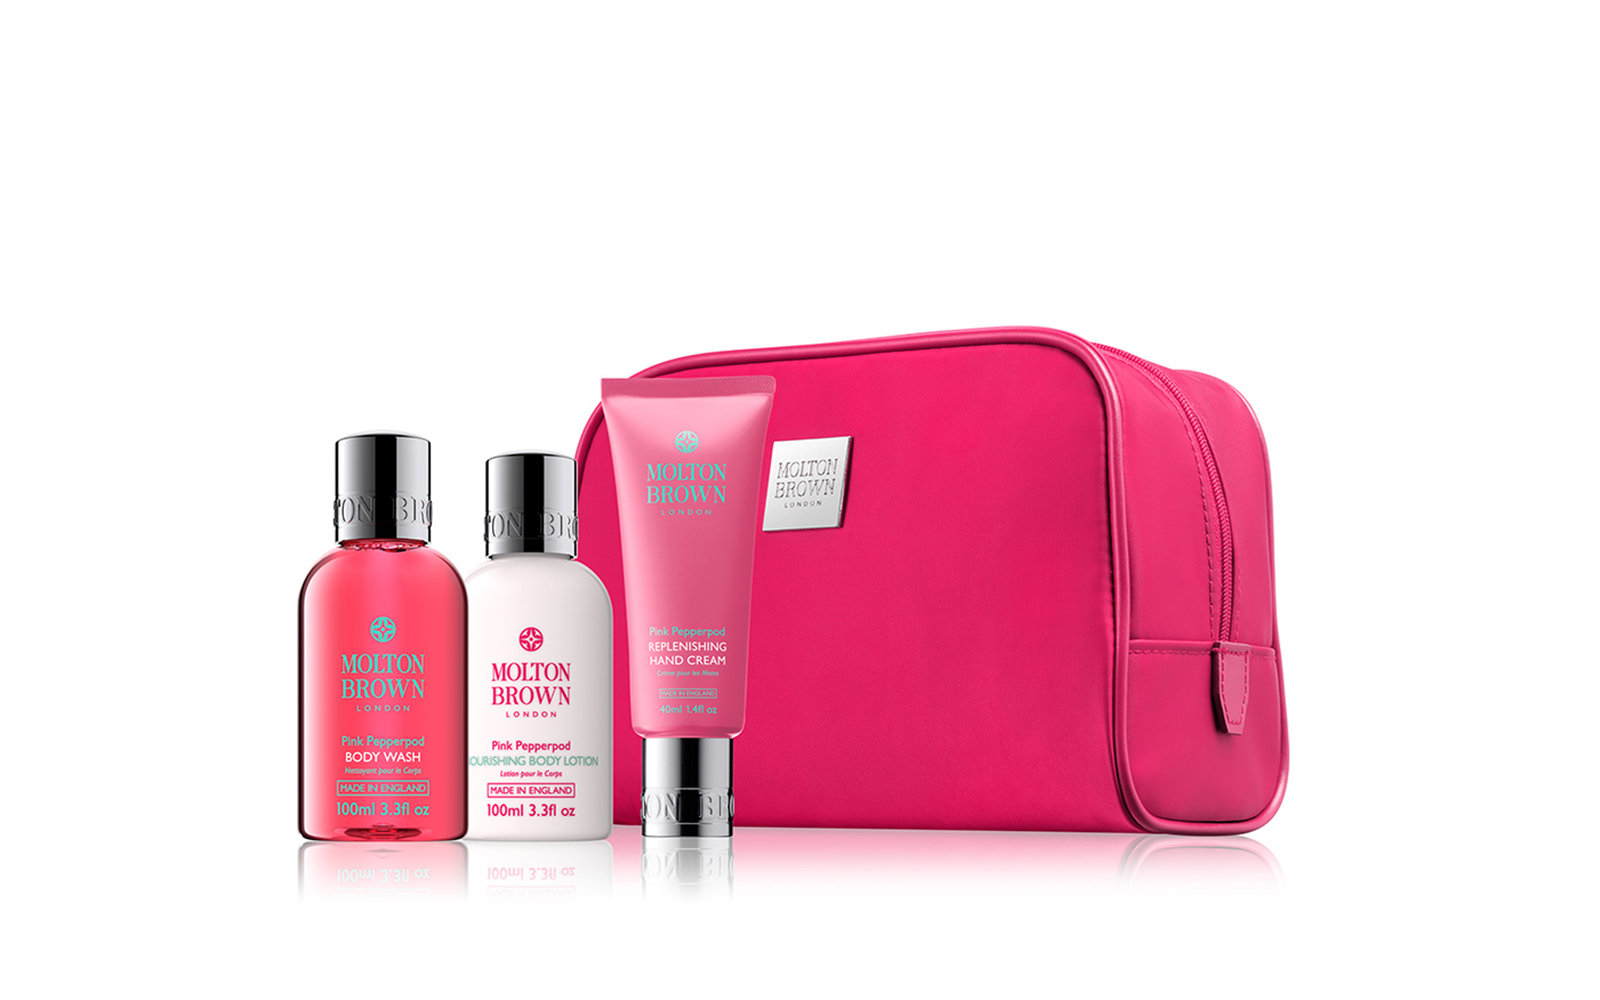 Molton Brown women's toiletry case